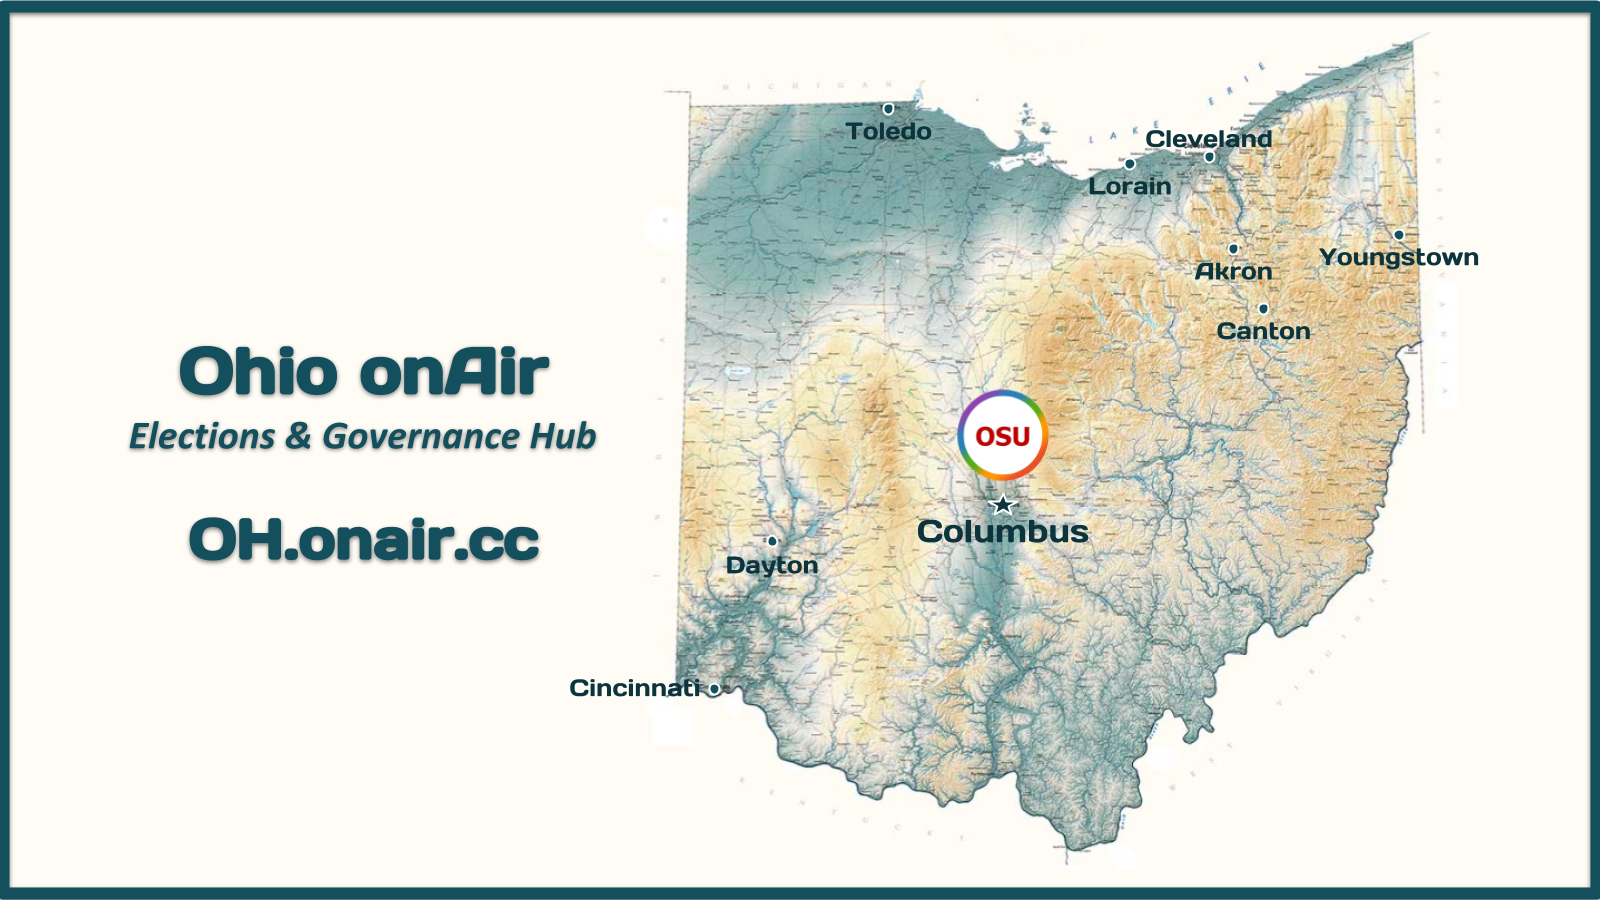 About Ohio onAir